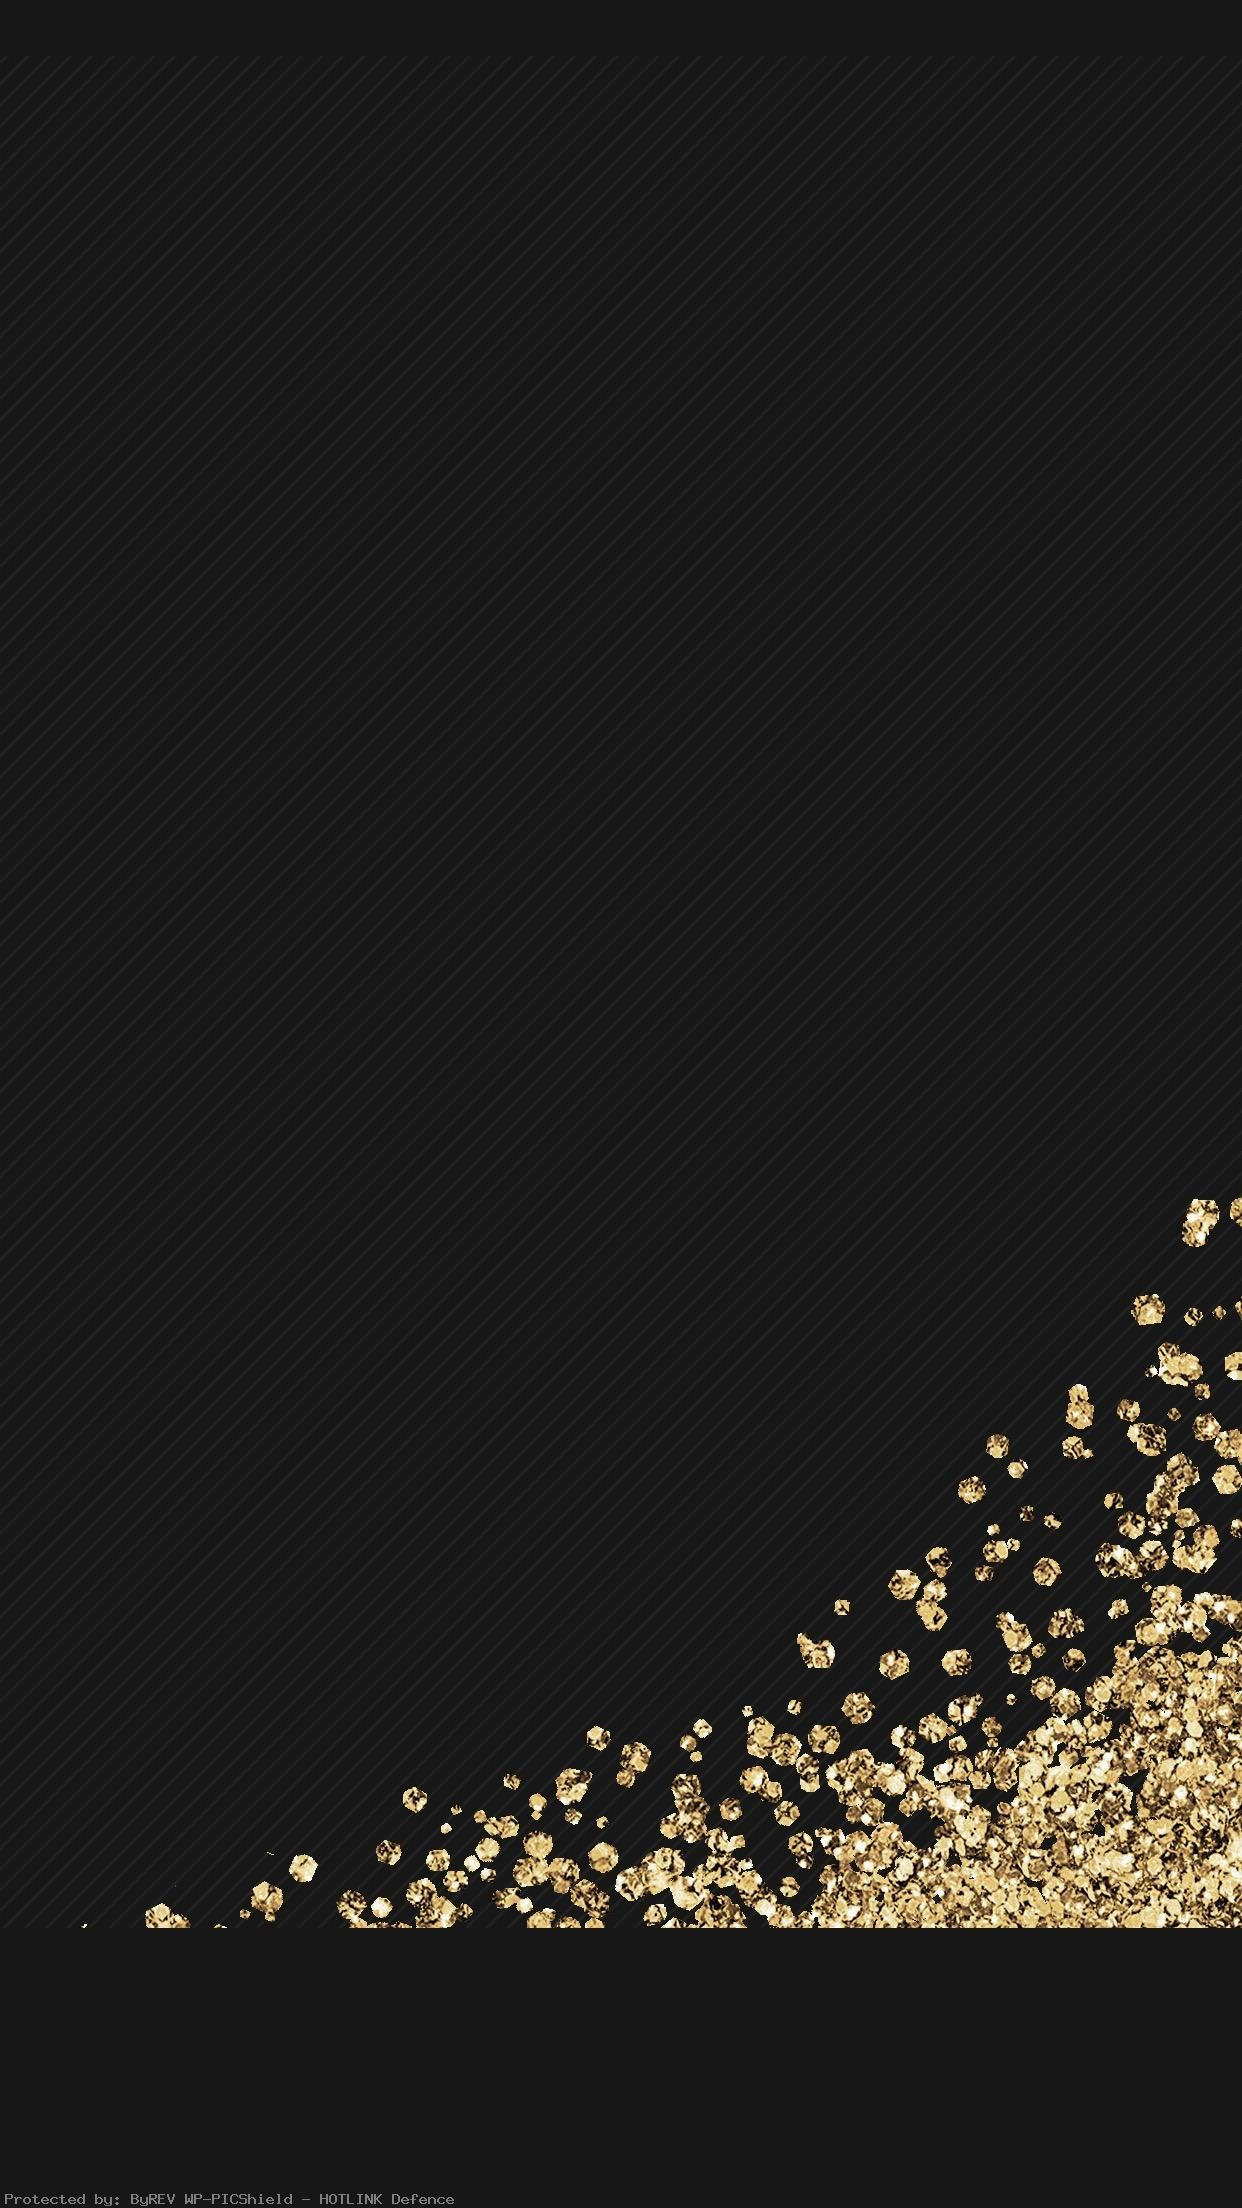 Aesthetic Black And Gold Iphone Wallpaper Total Update